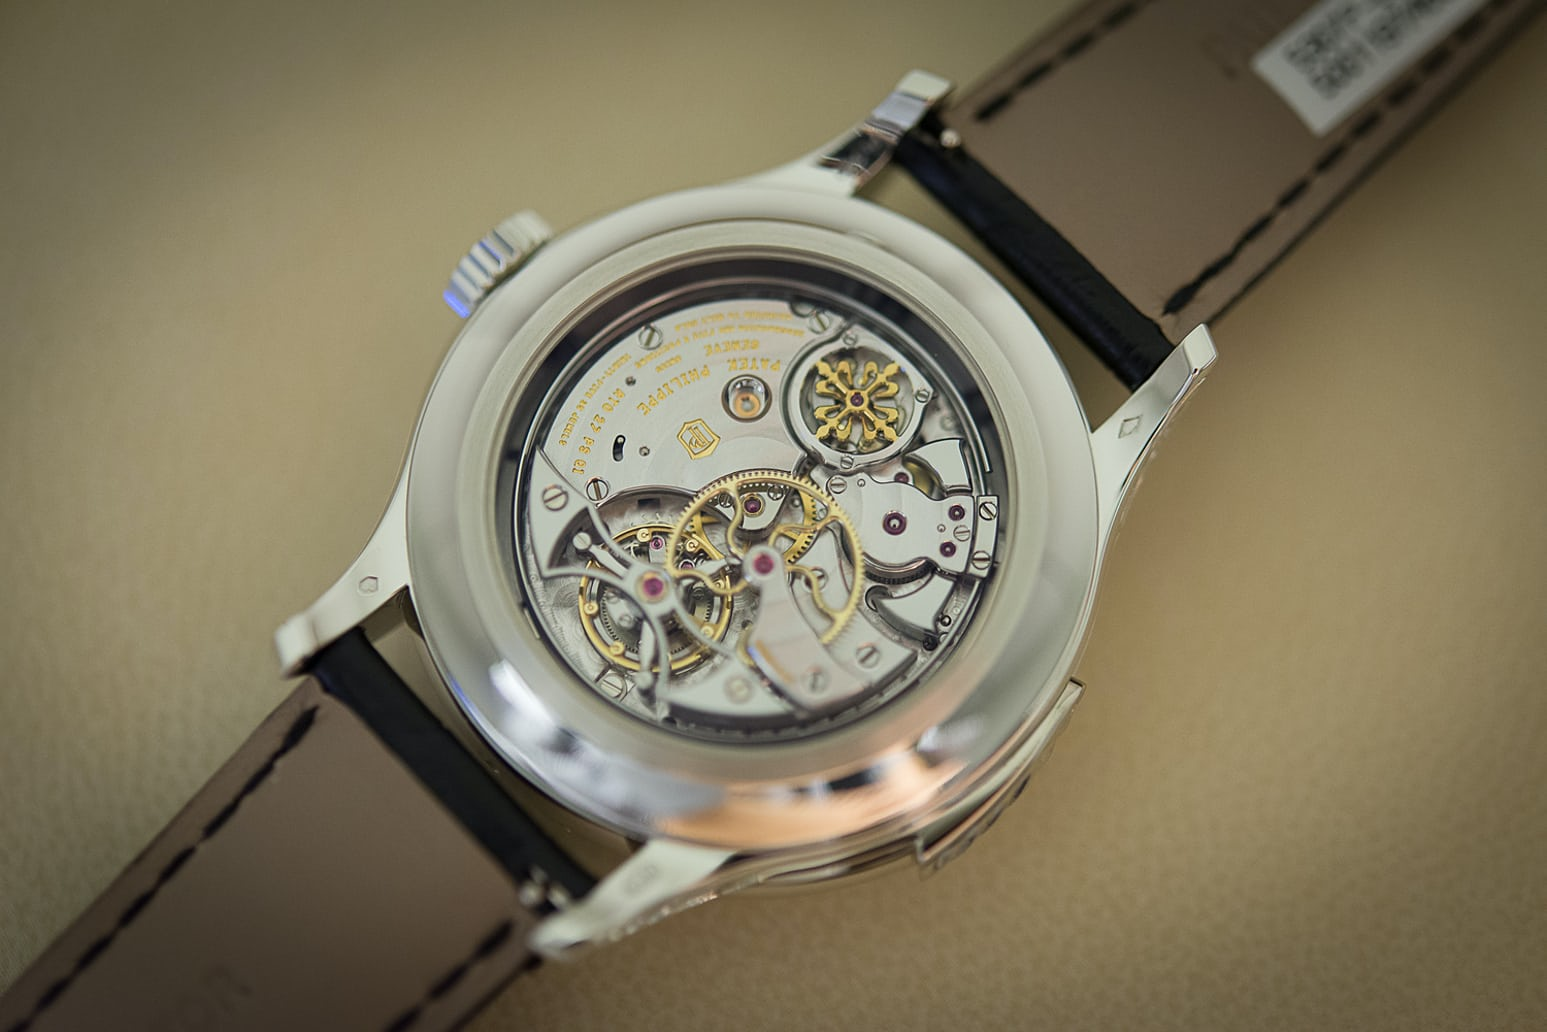 Patek repeater movement showing centrifugal governor, and tourbillon